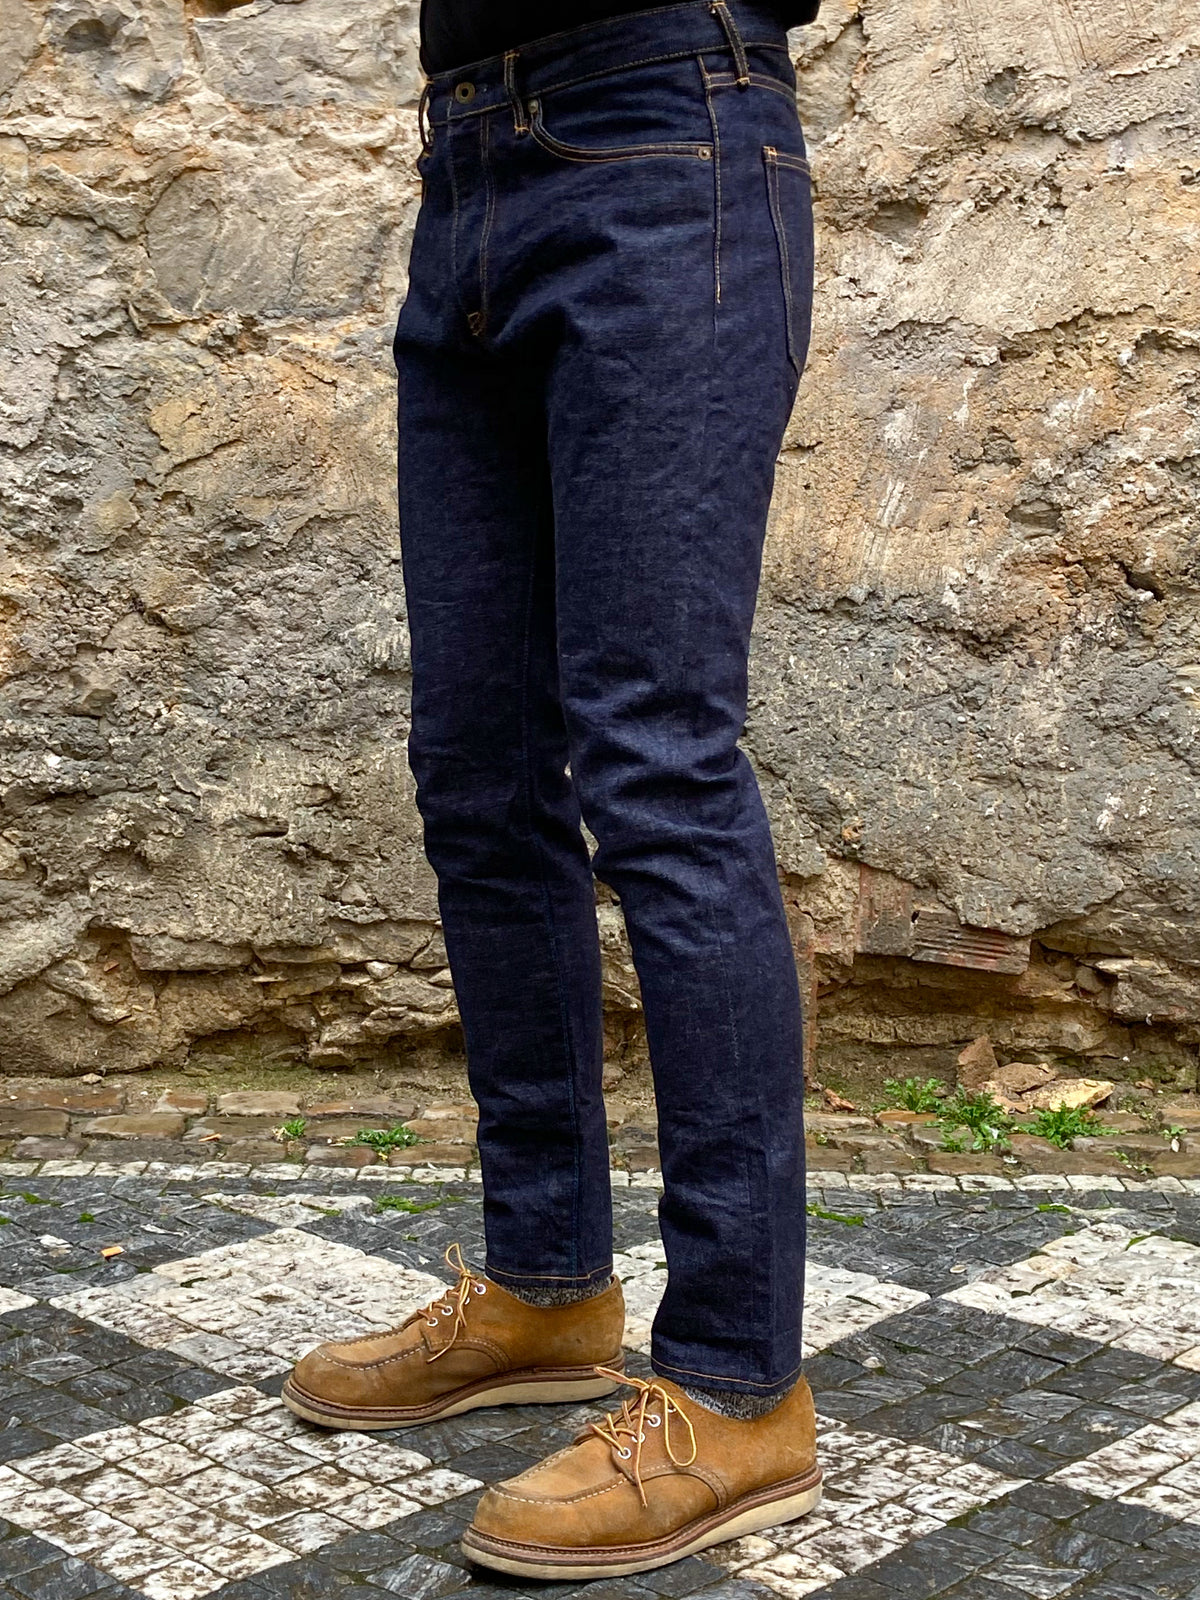 Japan Blue J201 Circle Tapered 14.8oz American Cotton Vintage Selvedge Jeans